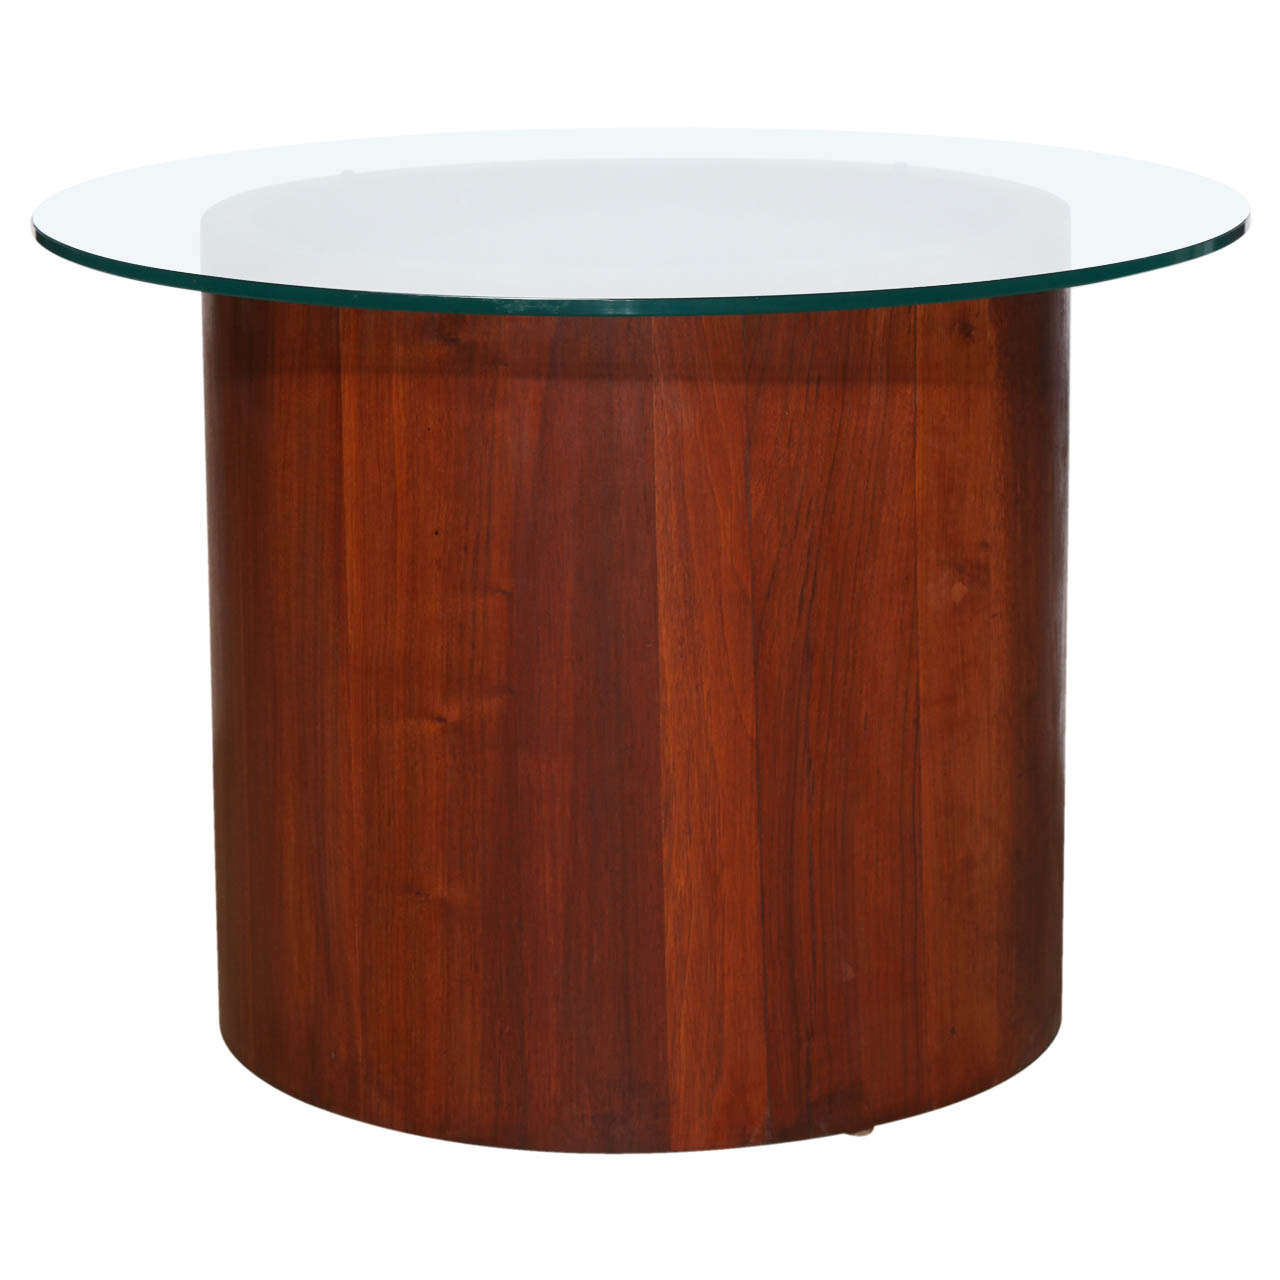 Late 1950's Solid Teak and Glass Top Occasional Table by Lane